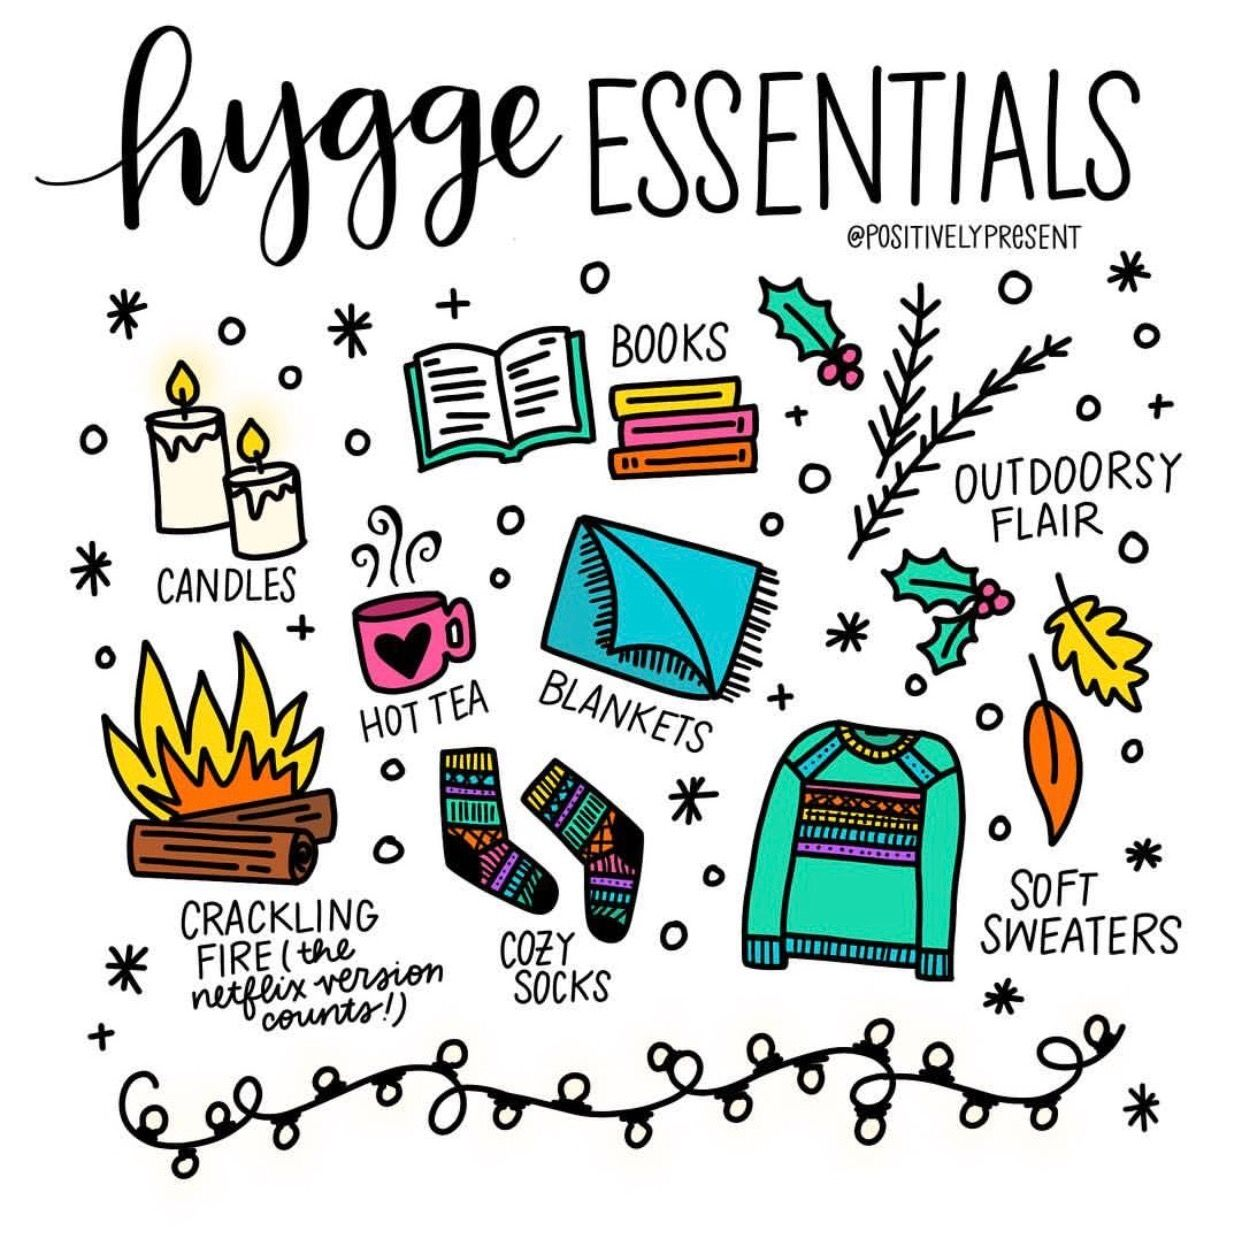 Pin By Belle On Health And Fitness Hygge How To Pronounce Hygge Danish Words